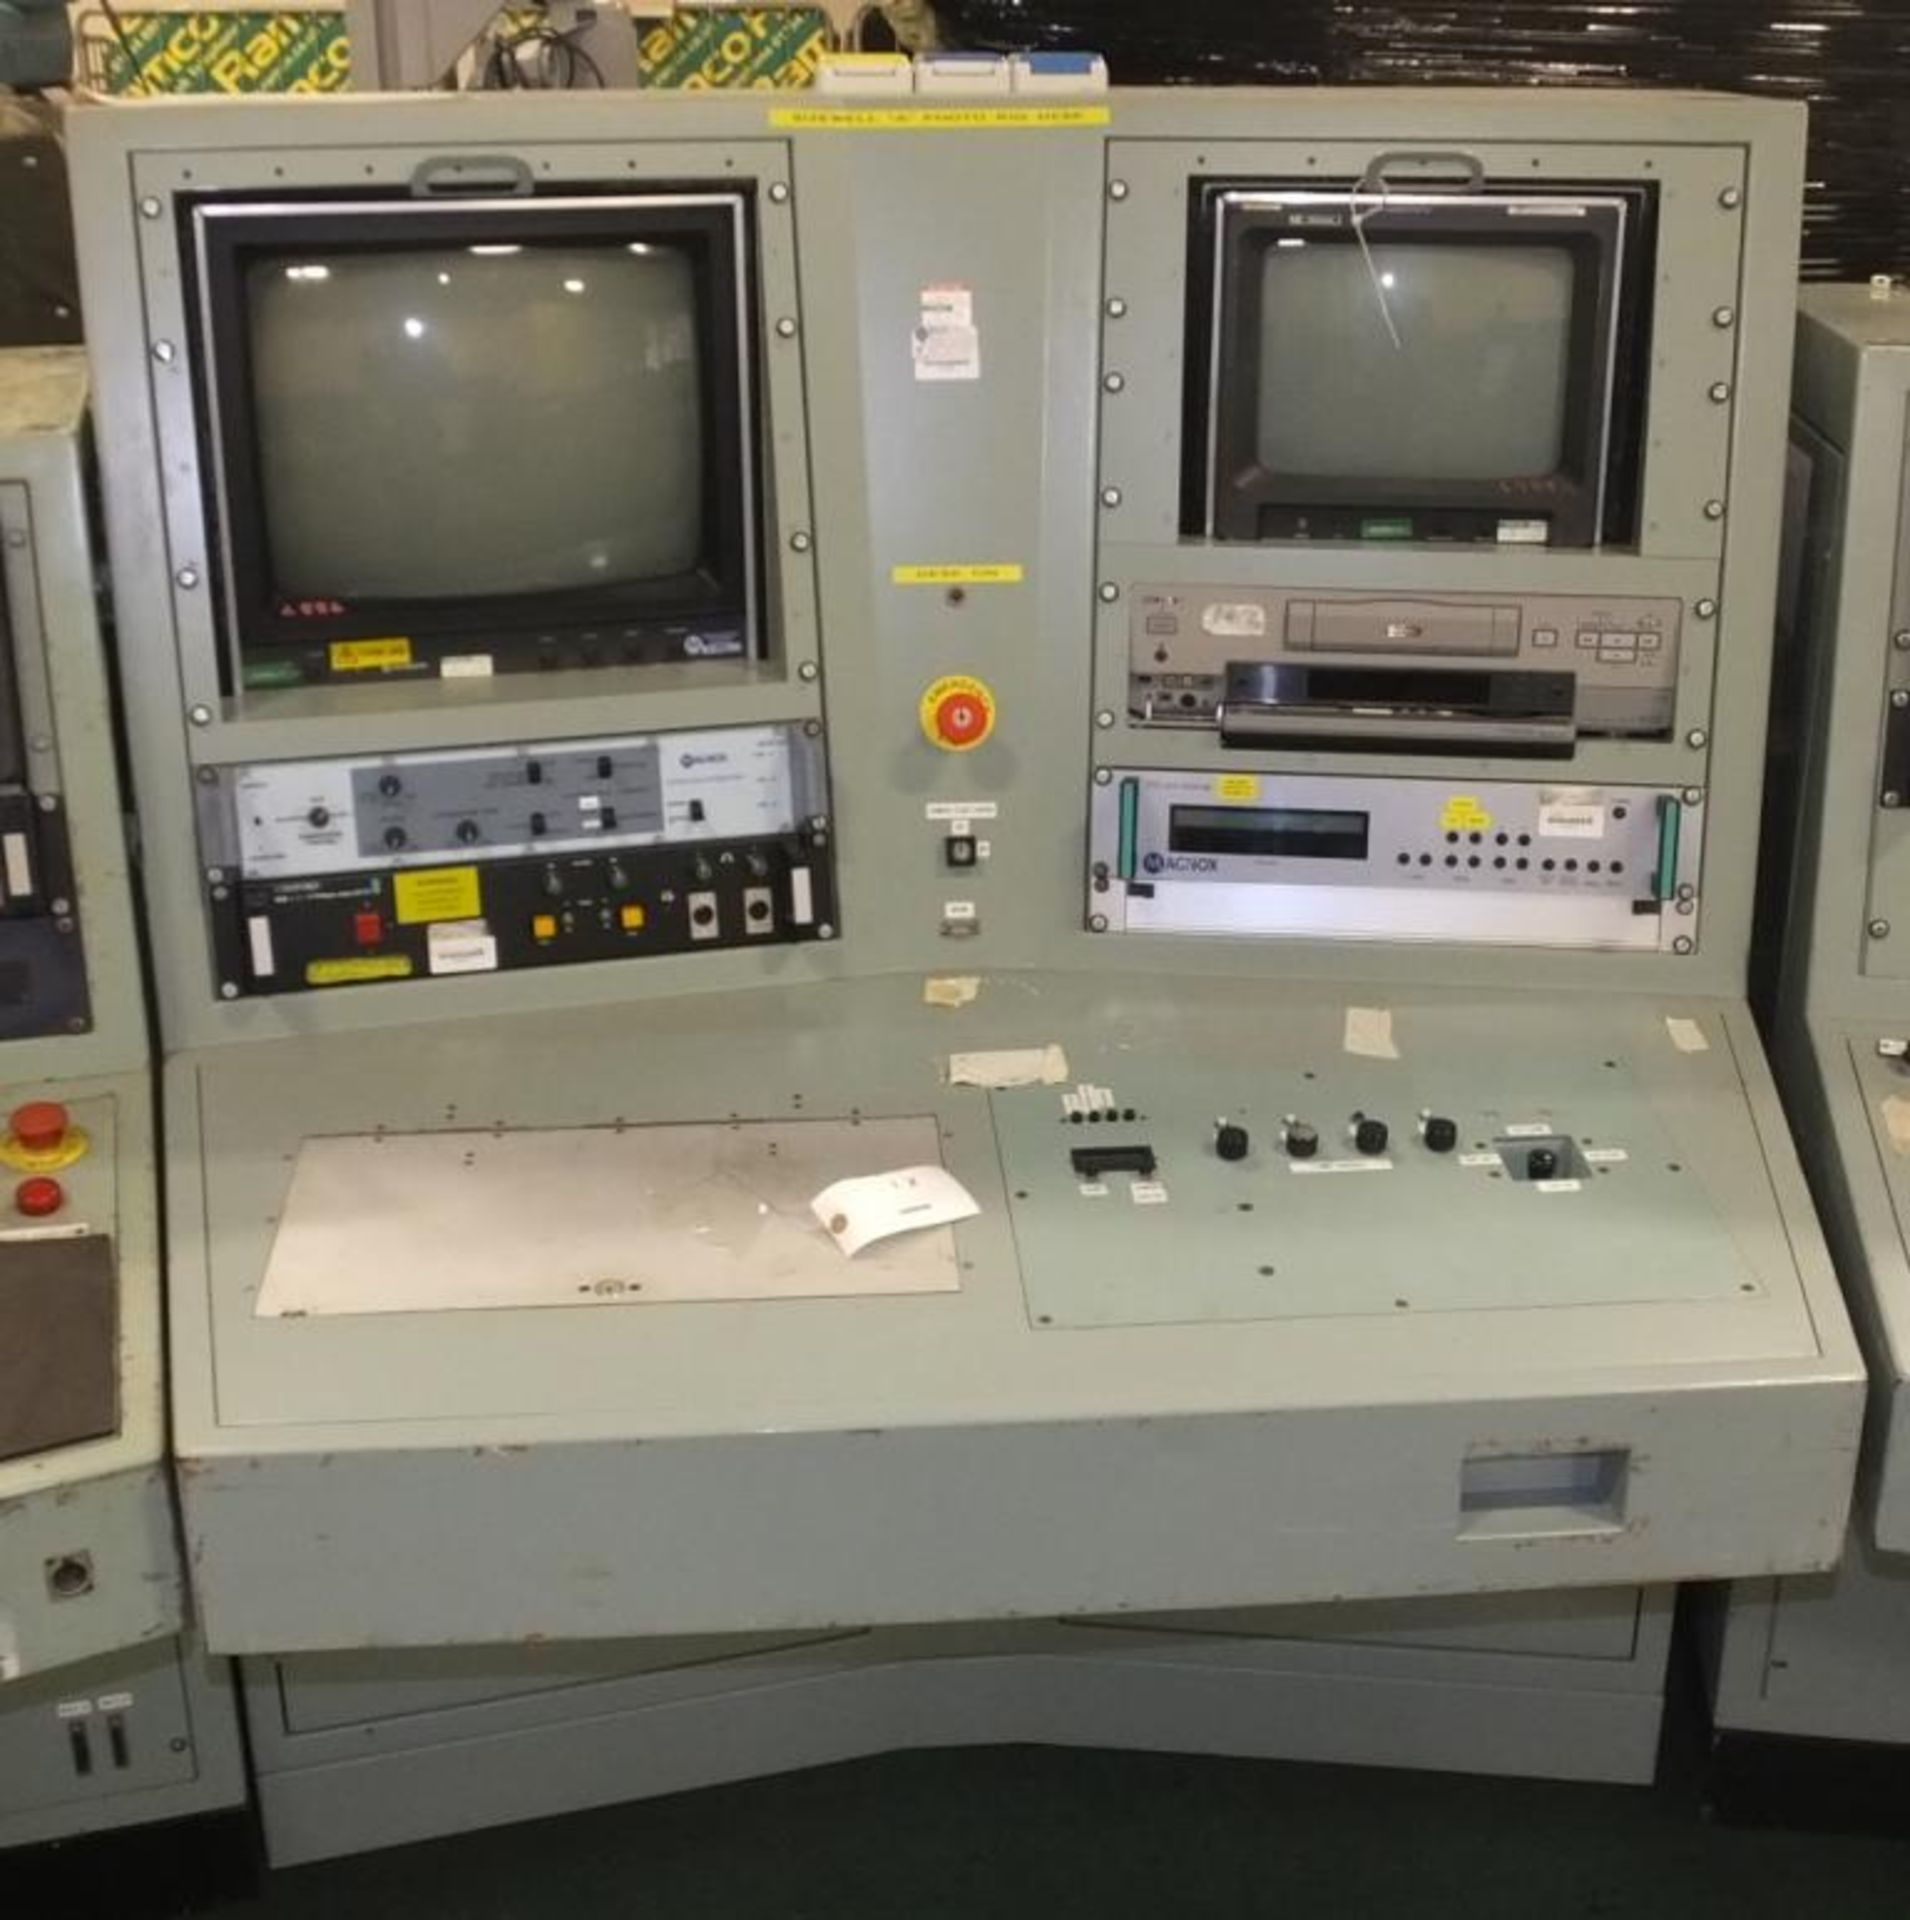 Ex Nuclear Plant Reactor Control / Monitoring System - Image 11 of 25